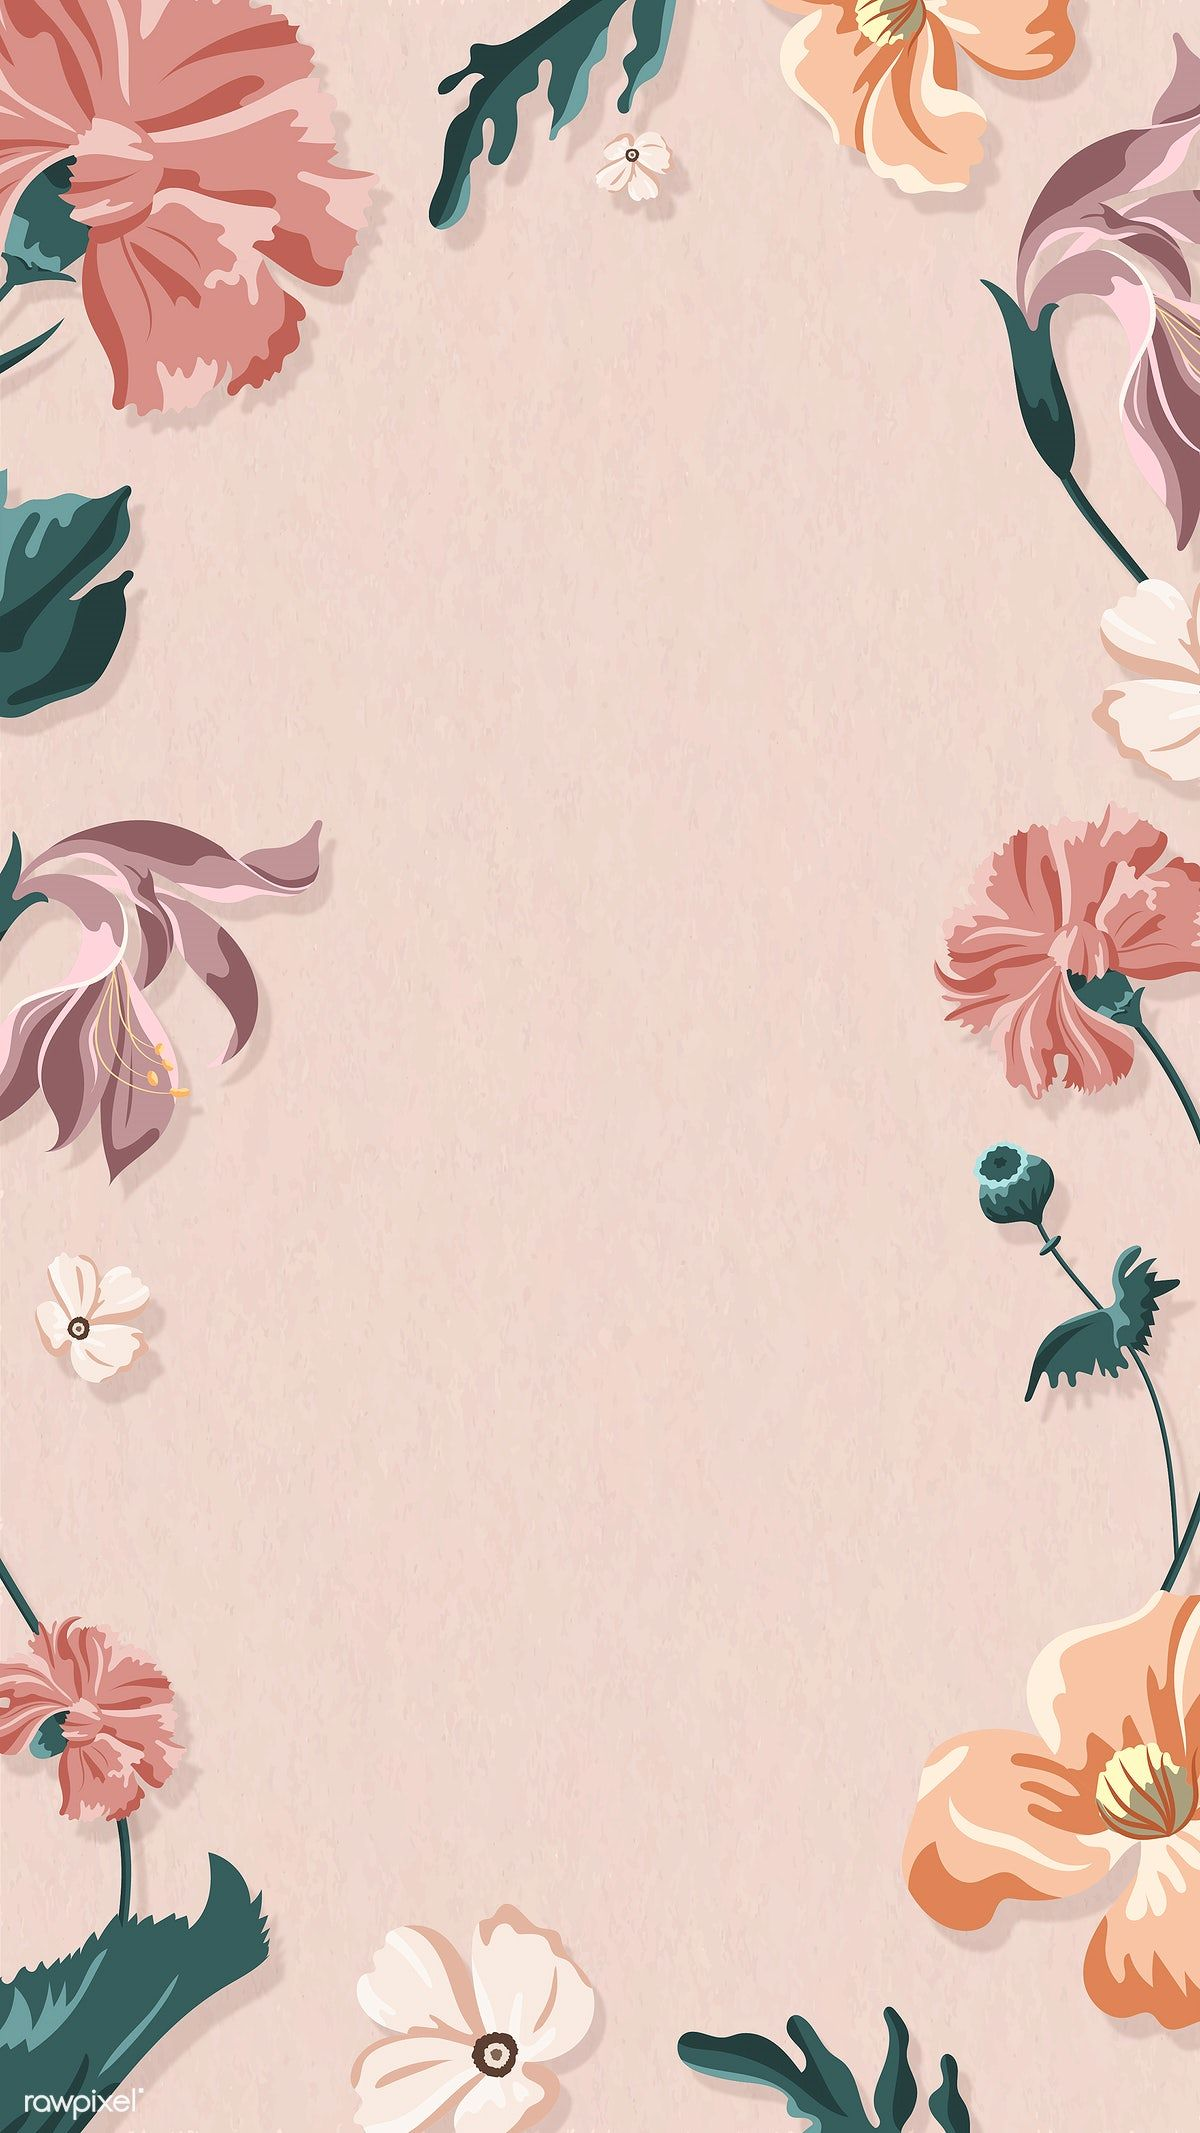 Blooming Floral Frame On A Pink Background Vector Premium Image By Rawpixel Com Pink Floral Background Gold Wallpaper Background Flower Background Wallpaper Coolest cempaka flower wallpaper